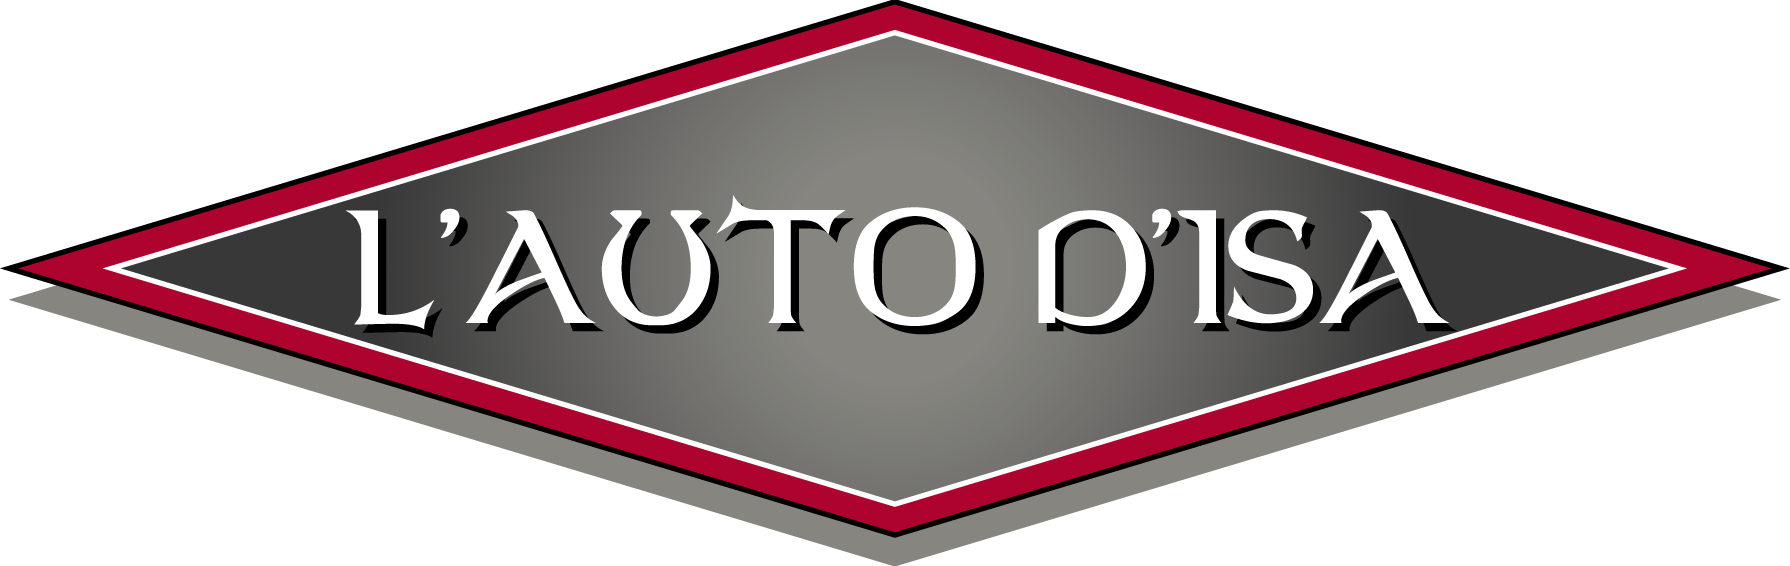 auto d'isa, véhicules d'occasion